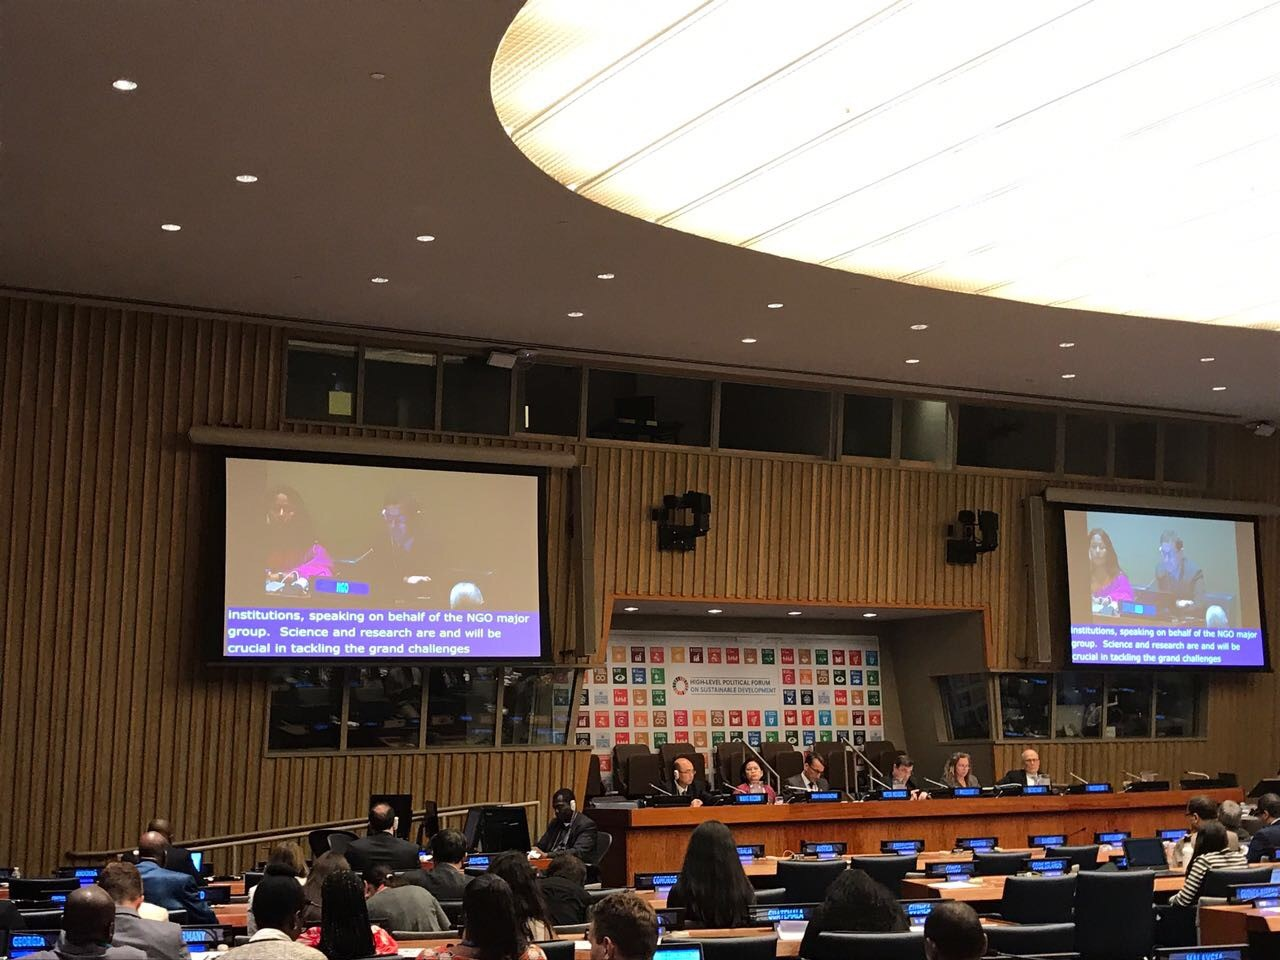 "IFLA's intervention at the HLPF session ""Science-policy interface and emerging issues"" on behalf of the NGO Major Group"